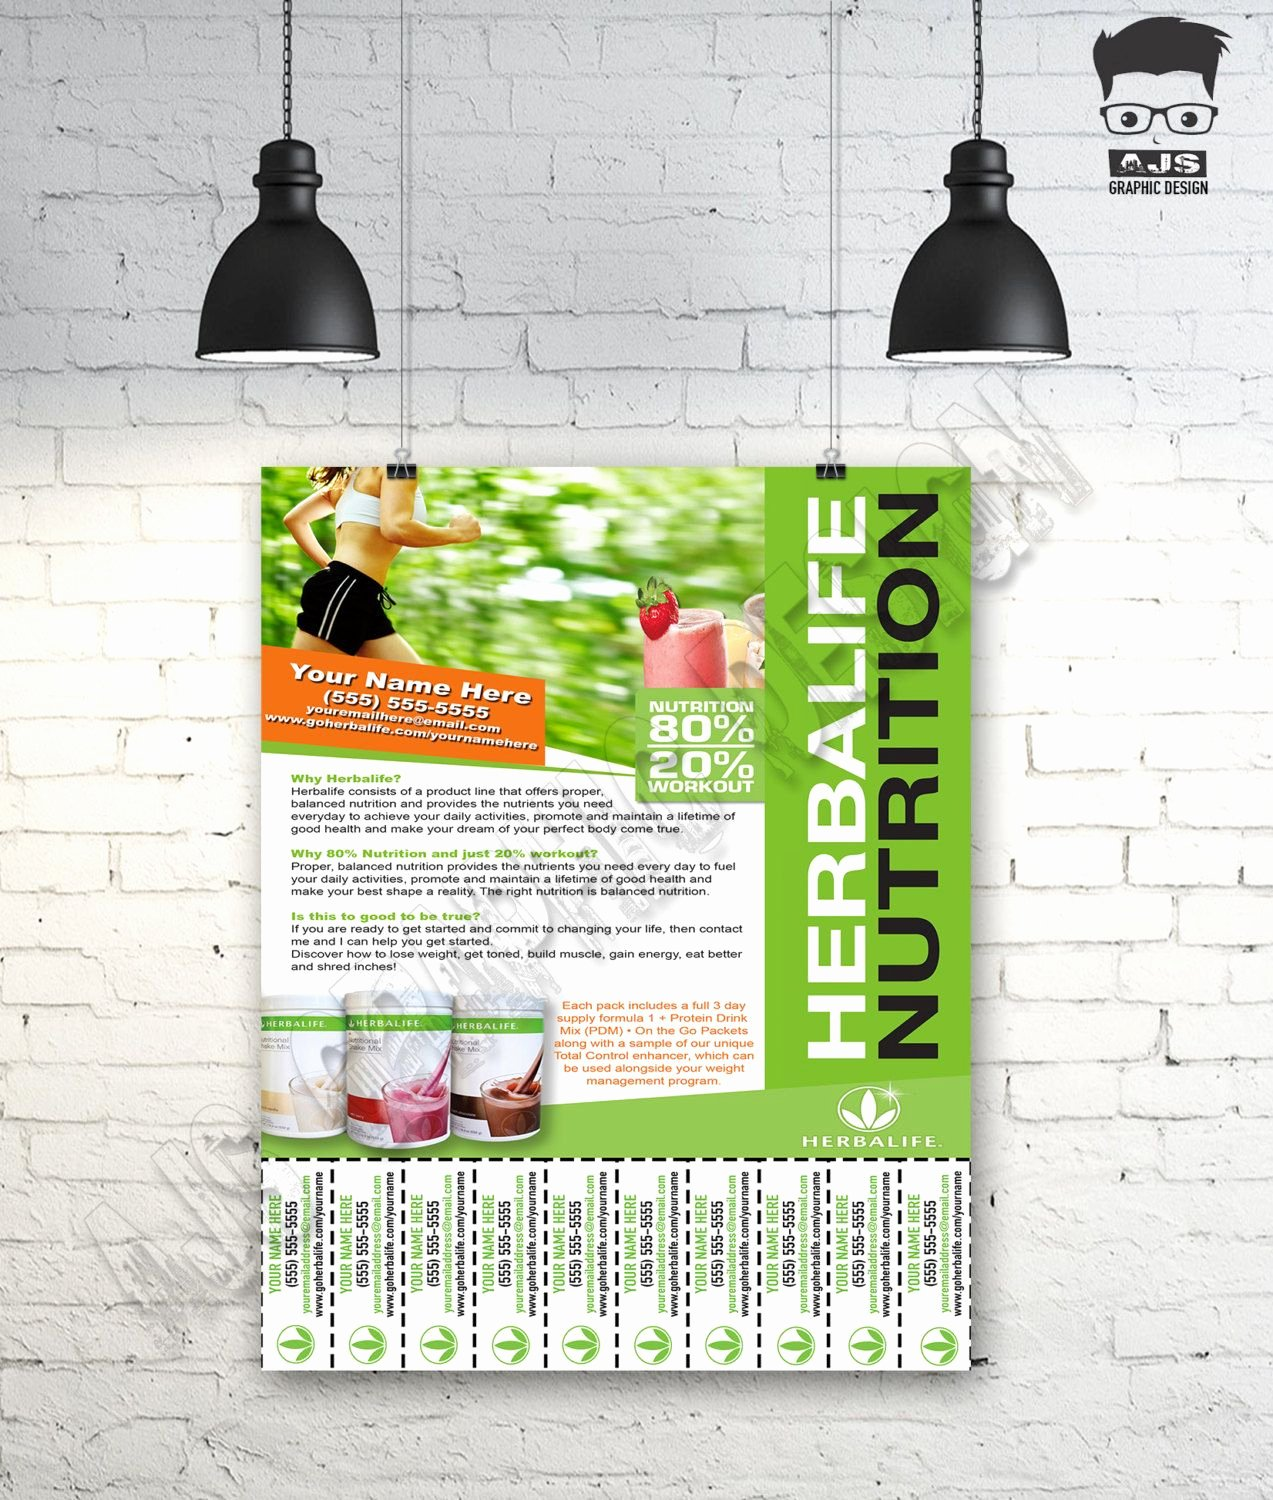 Tear Off Flyer Template Photoshop Luxury Custom Print Ready Herbalife Contact Flyer • Herbalife Nutrition Tear F • Herbalife Graphics